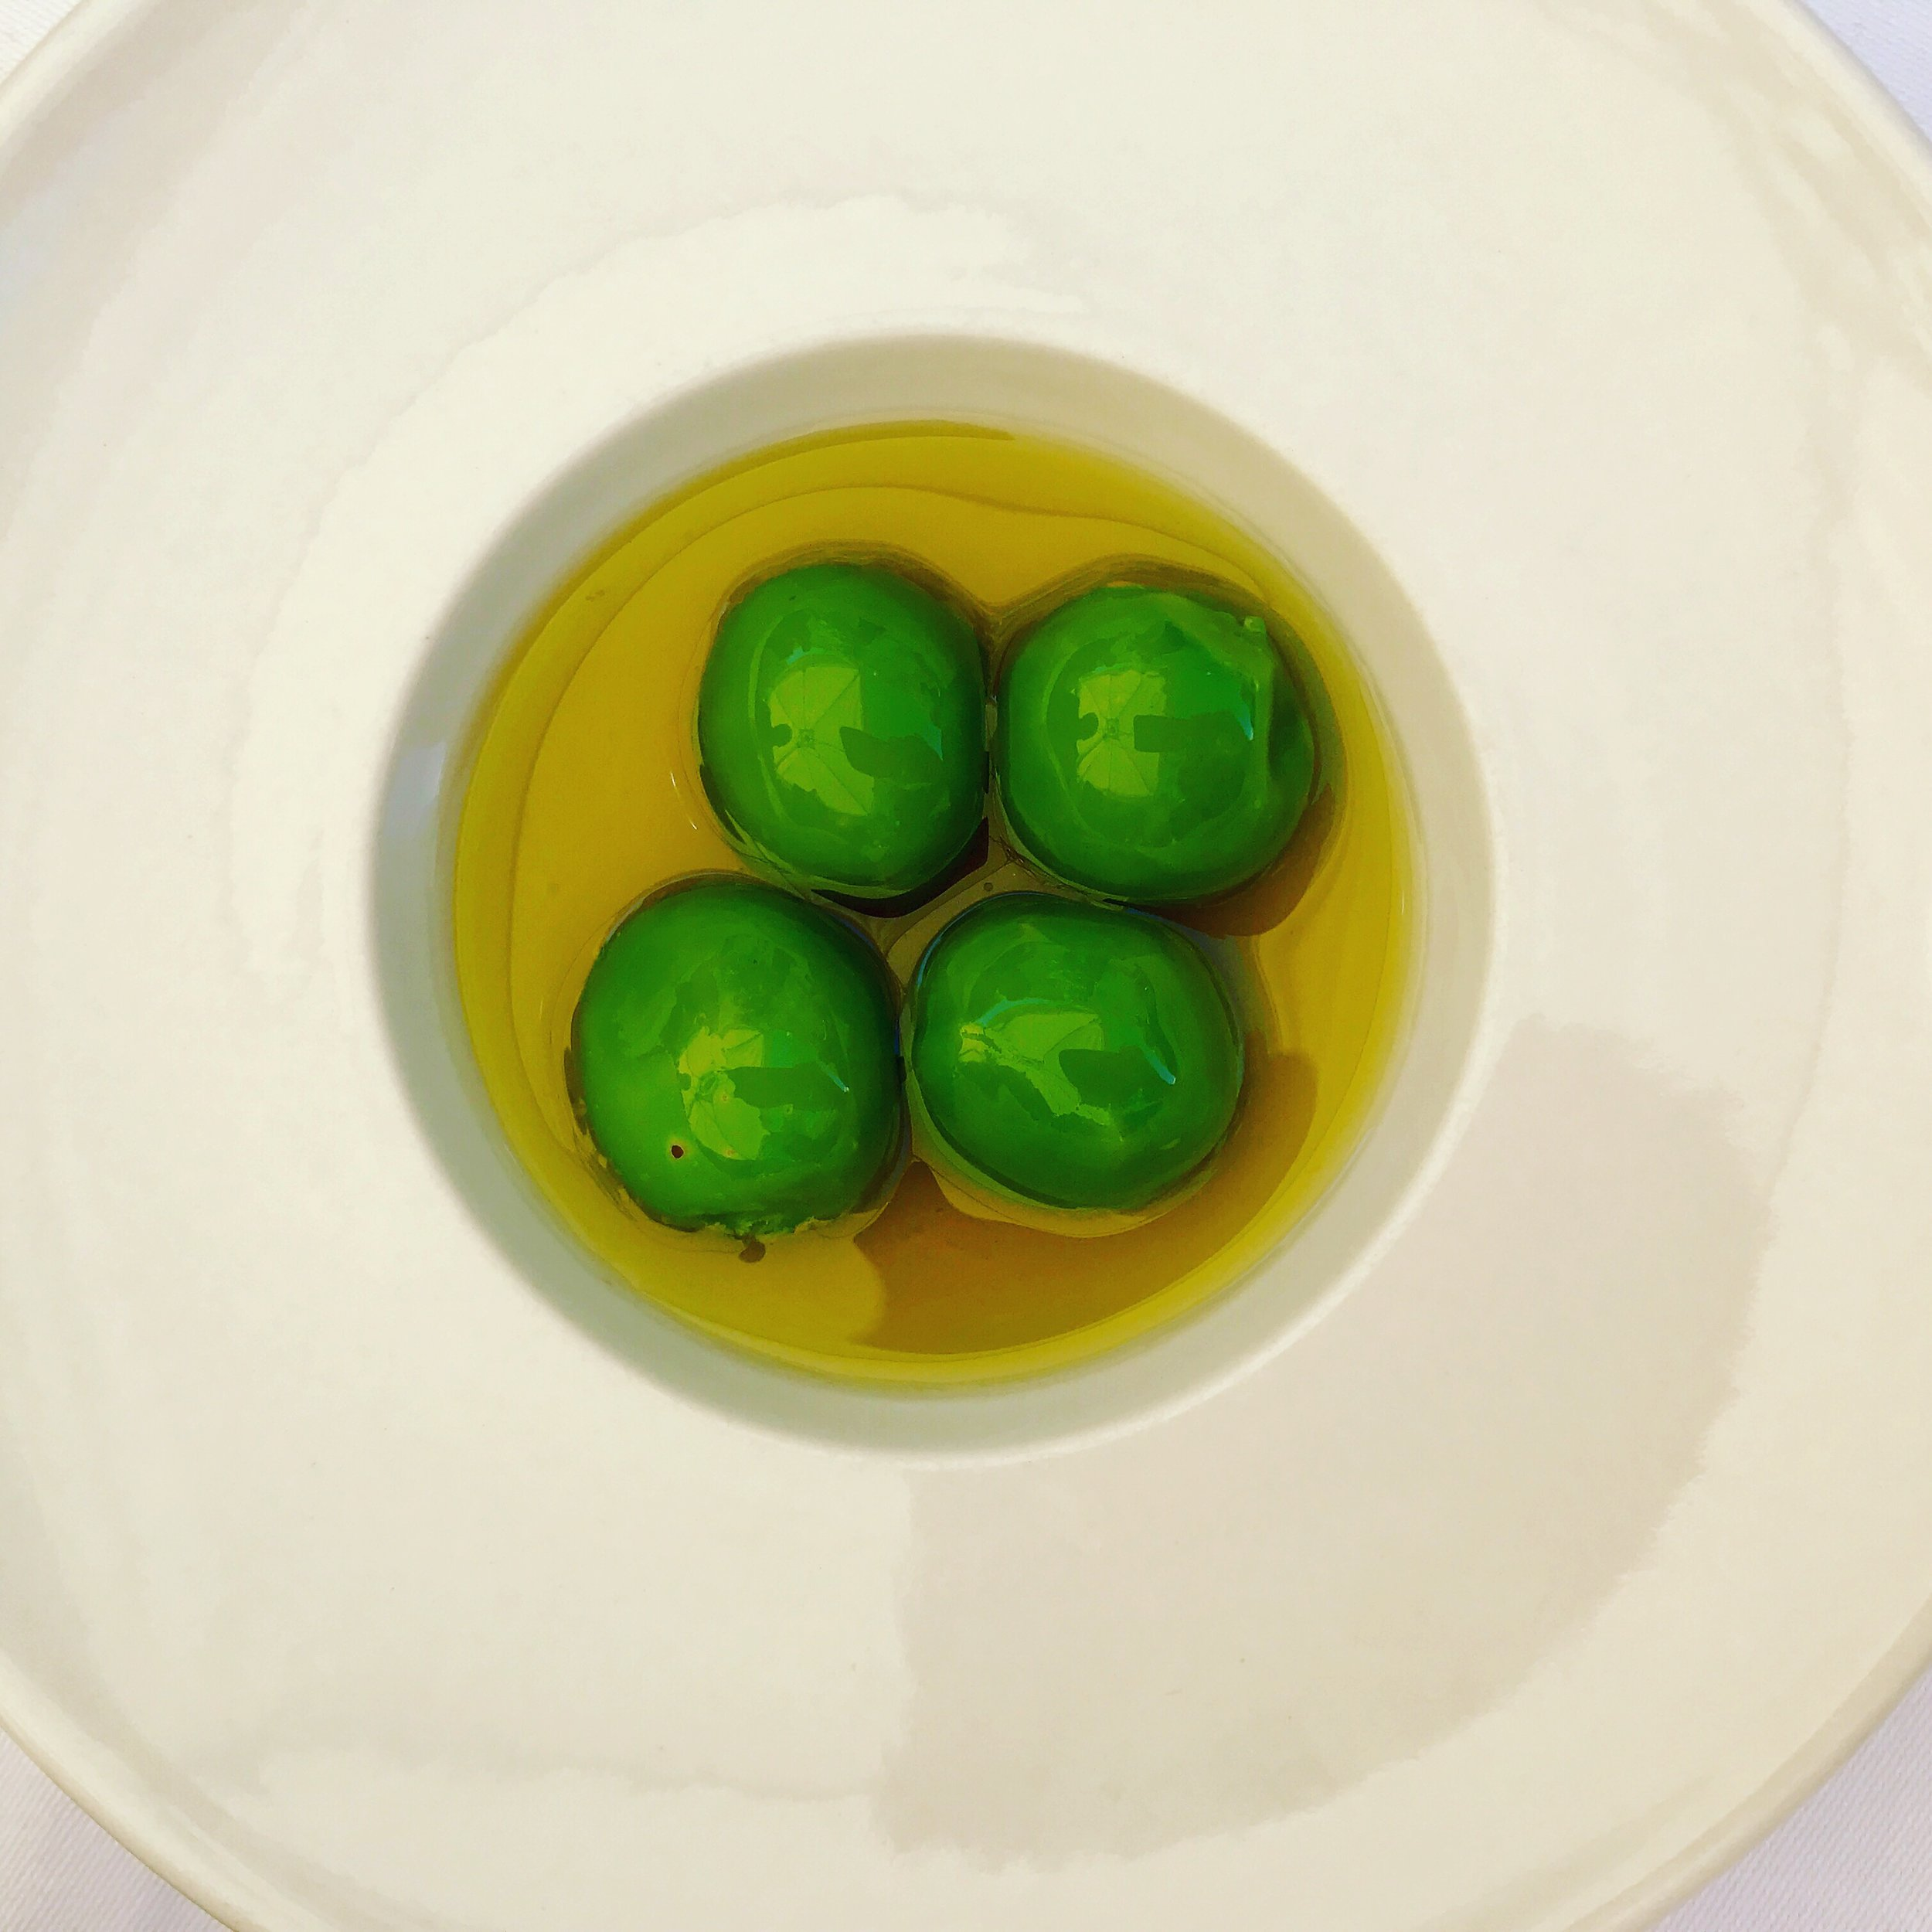 This amuse bouche was one of many delicious taste surprises in Cadiz. It looks like olives, but when you pop it into your mouth and bite down,gazpacho fills your mouth.